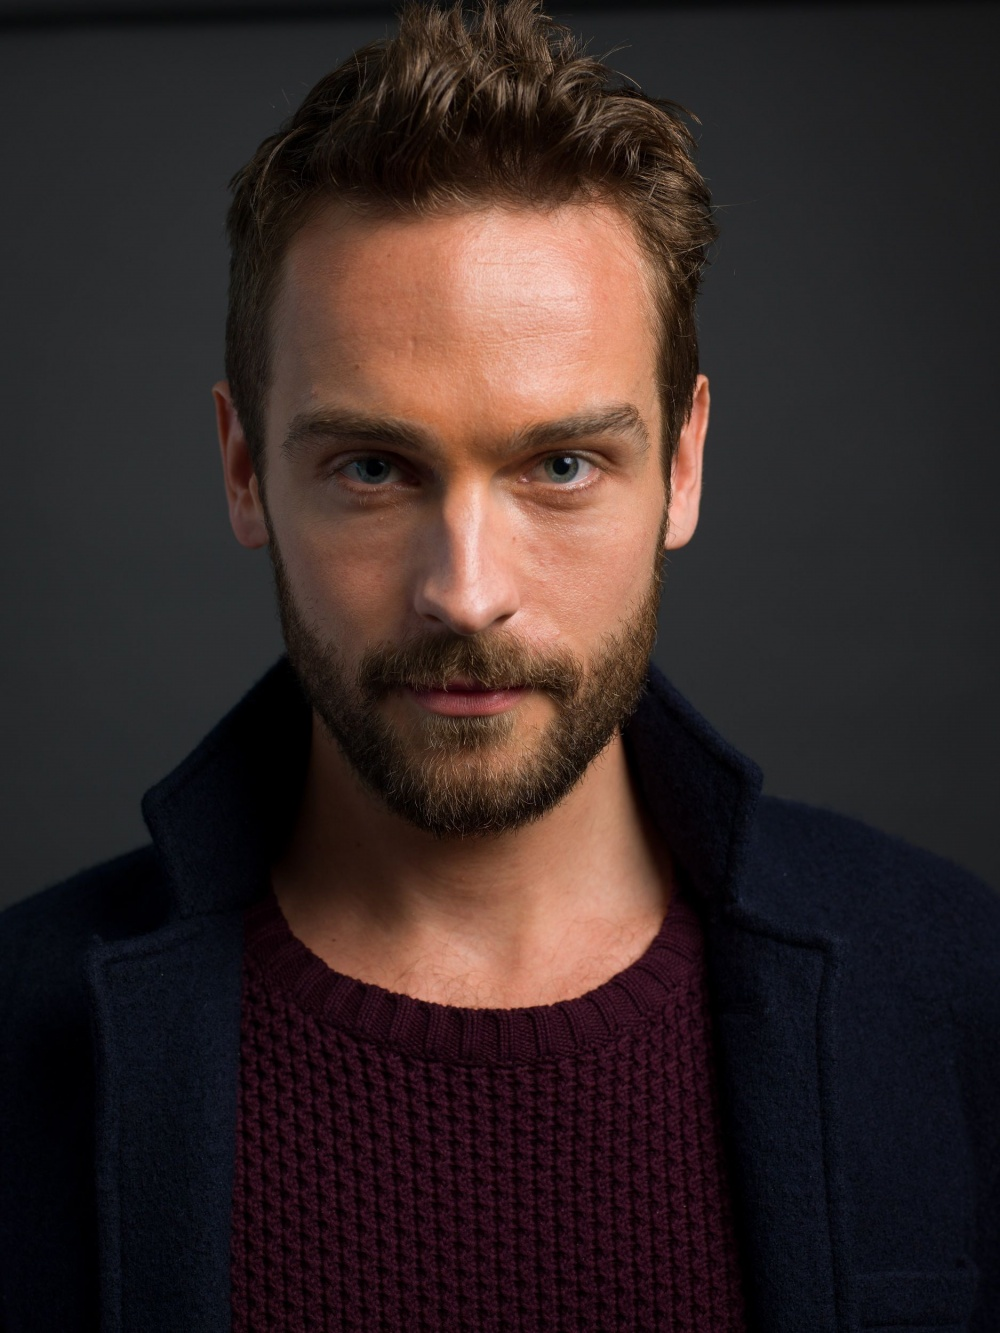 Tom Mison (born 1982)